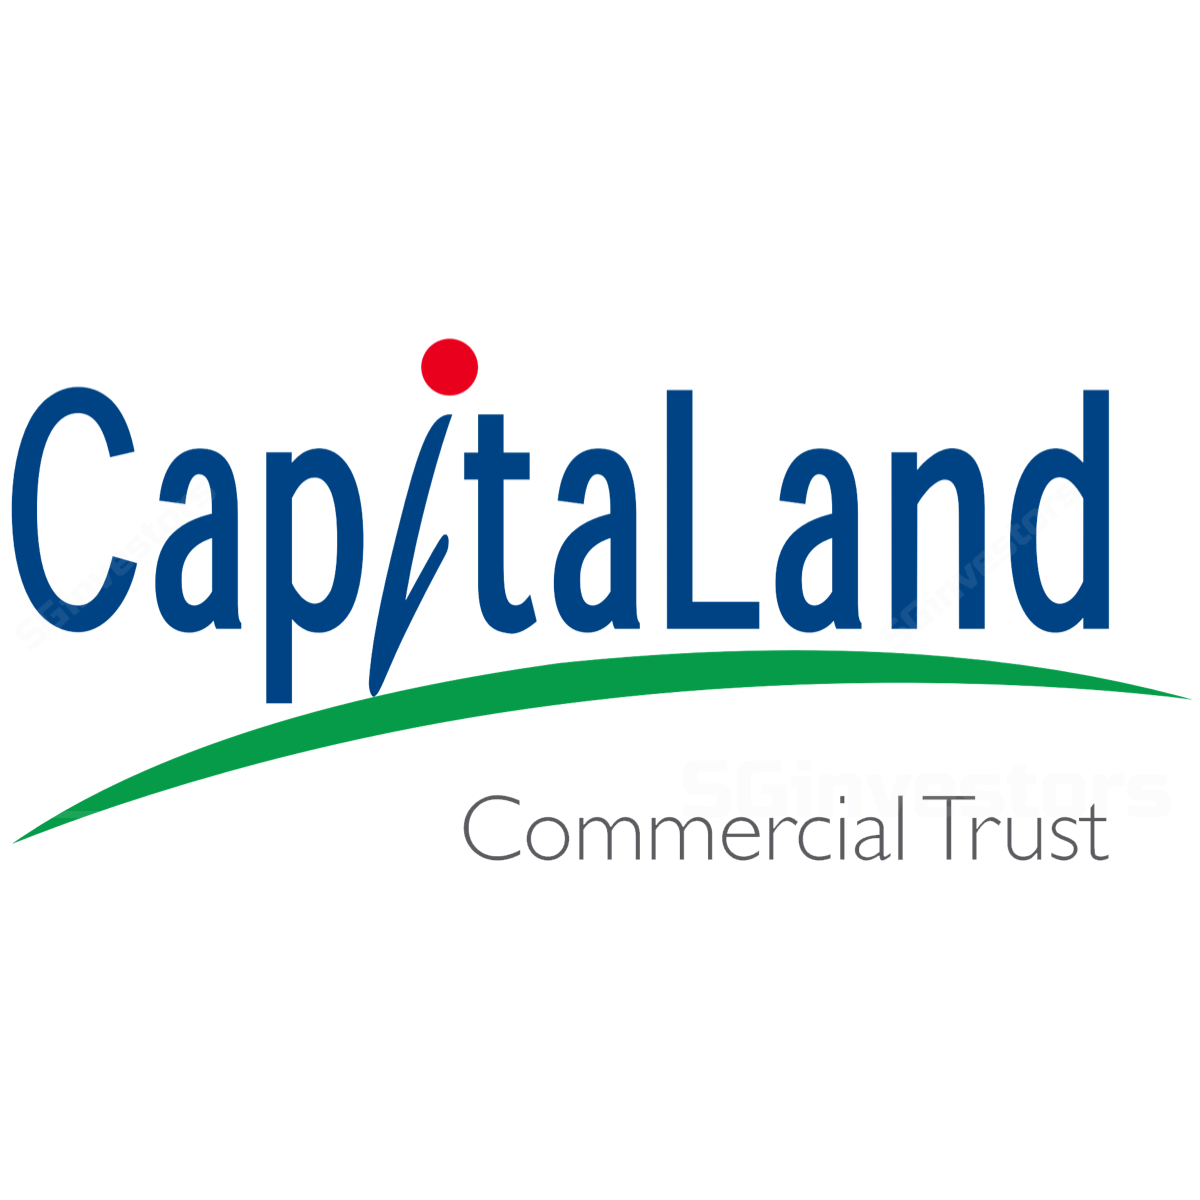 CapitaLand Commercial Trust - Phillip Securities 2018-07-02: Portfolio Reconstitution Continues With Twenty Anson Sale